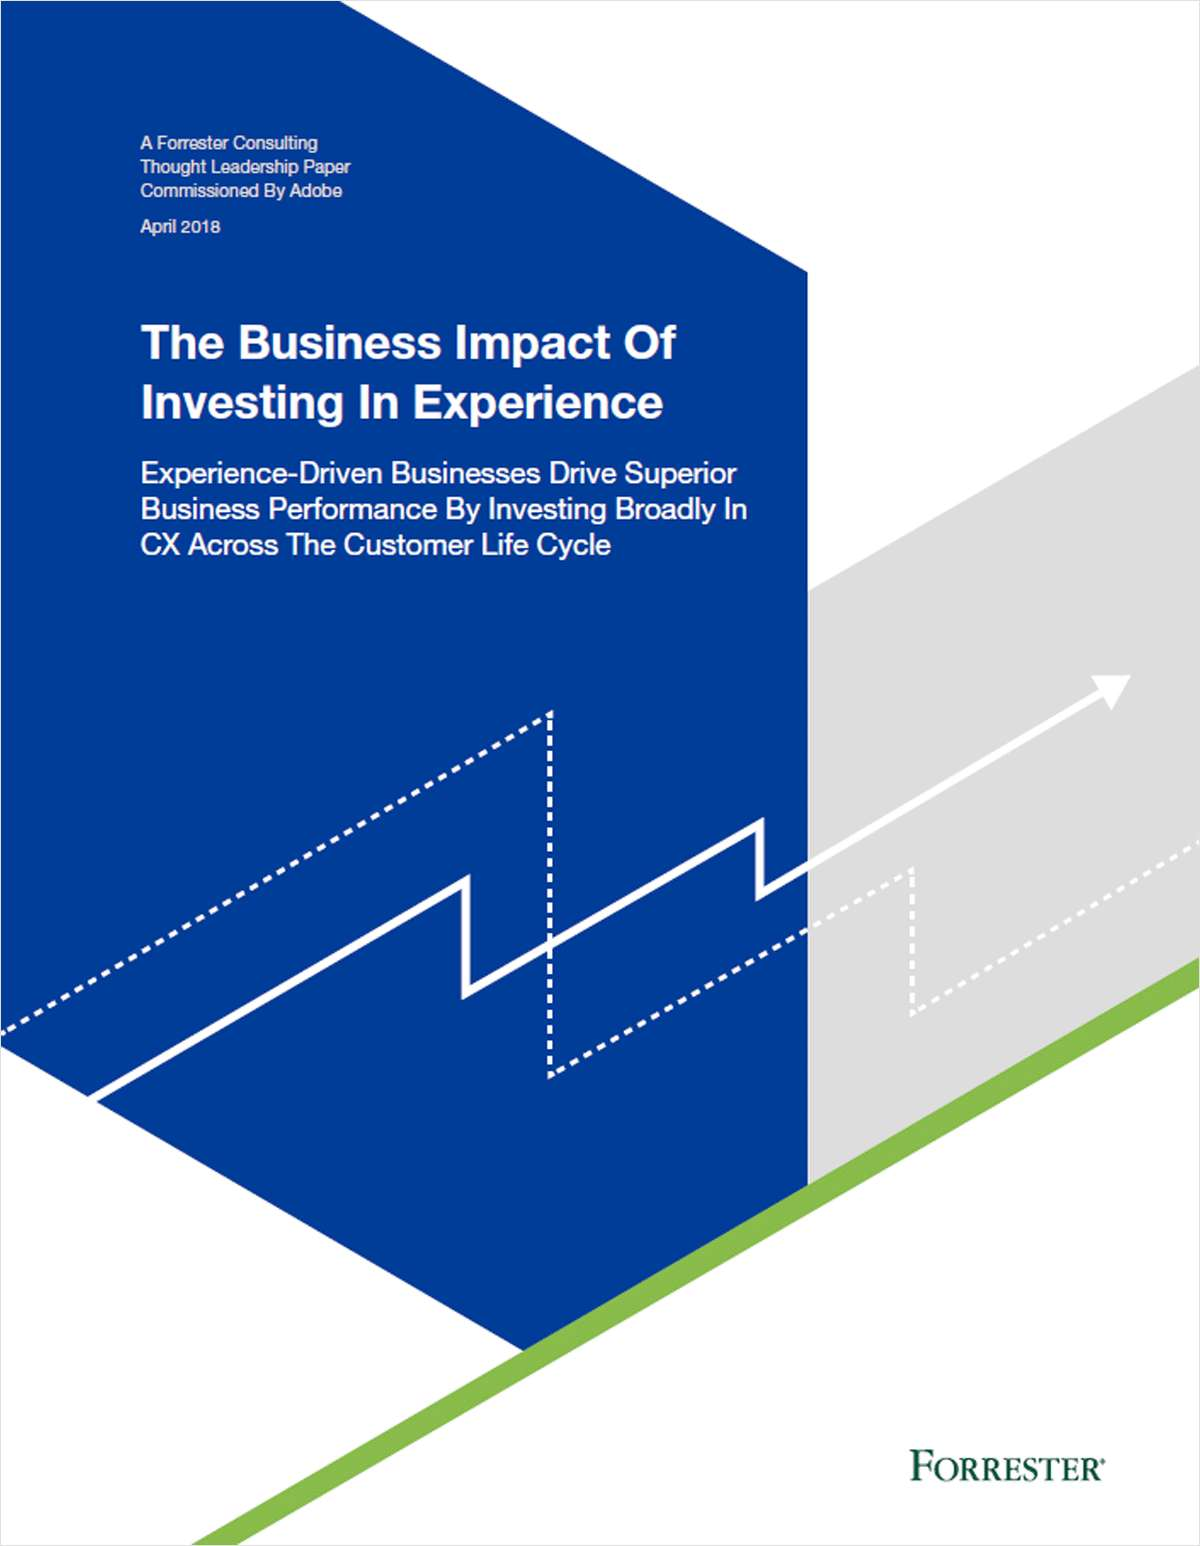 The Business Impact of Investing In Experience